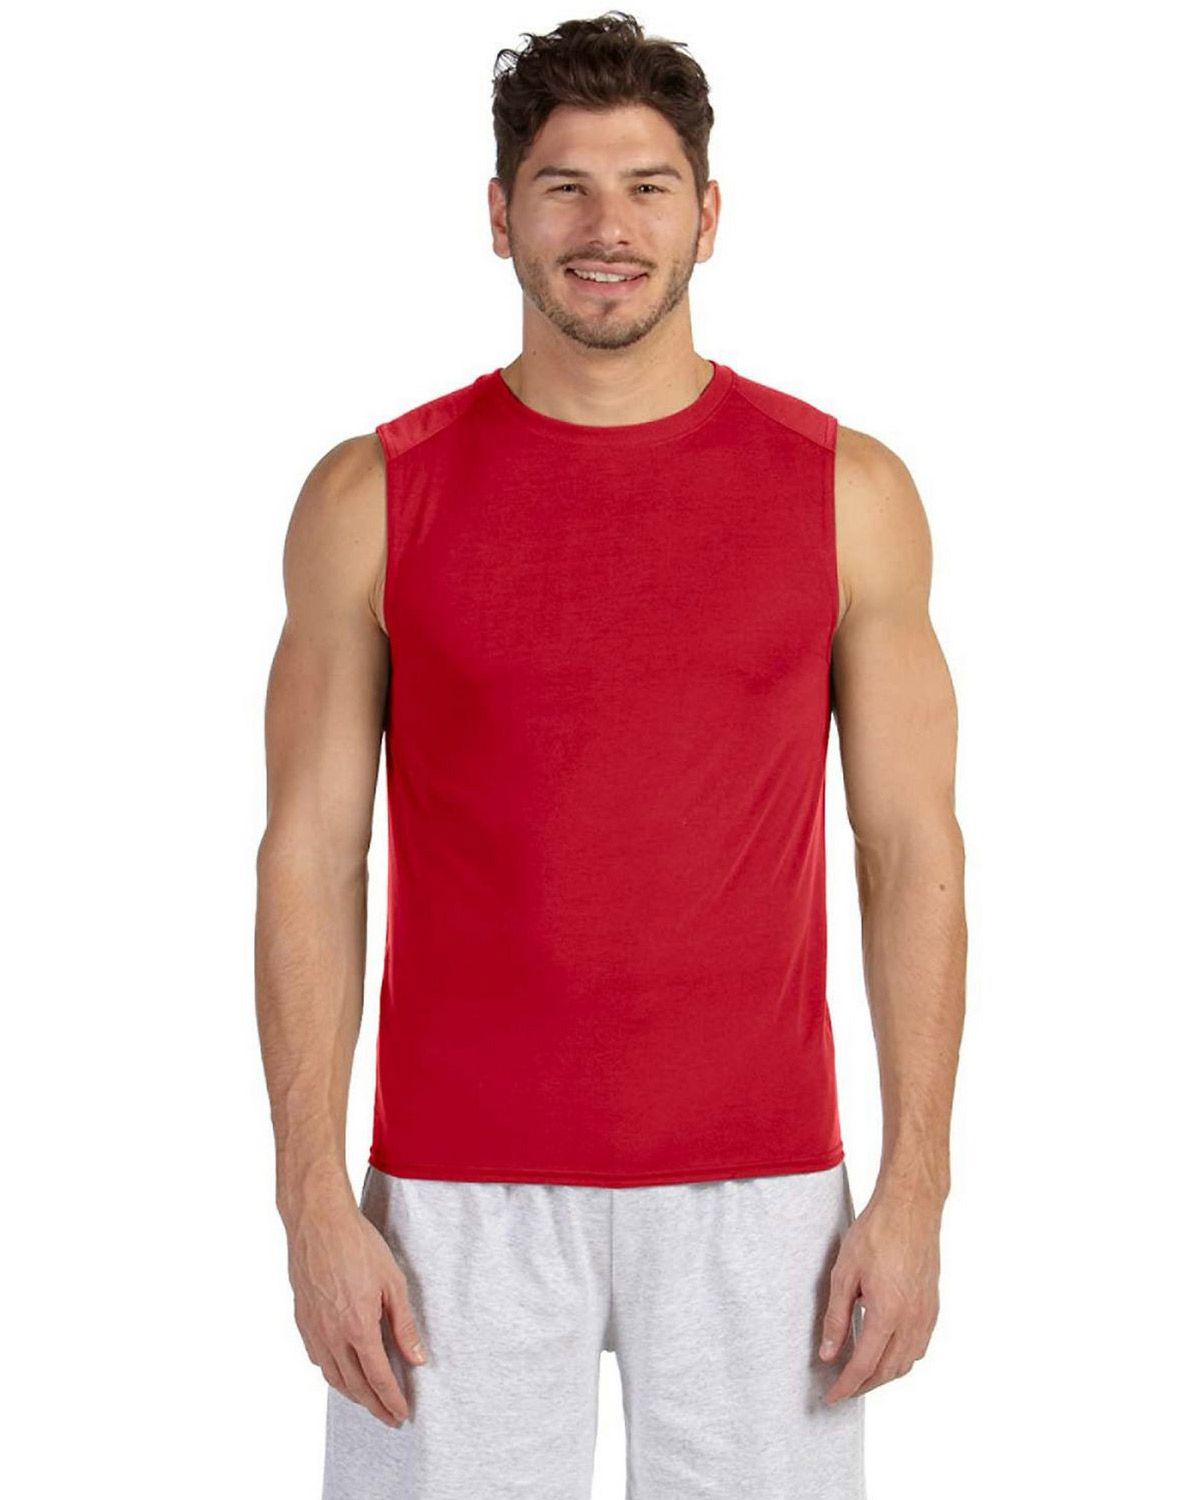 Gildan 42700 Performance Adult Sleeveless T Shirt - Red - M 42700